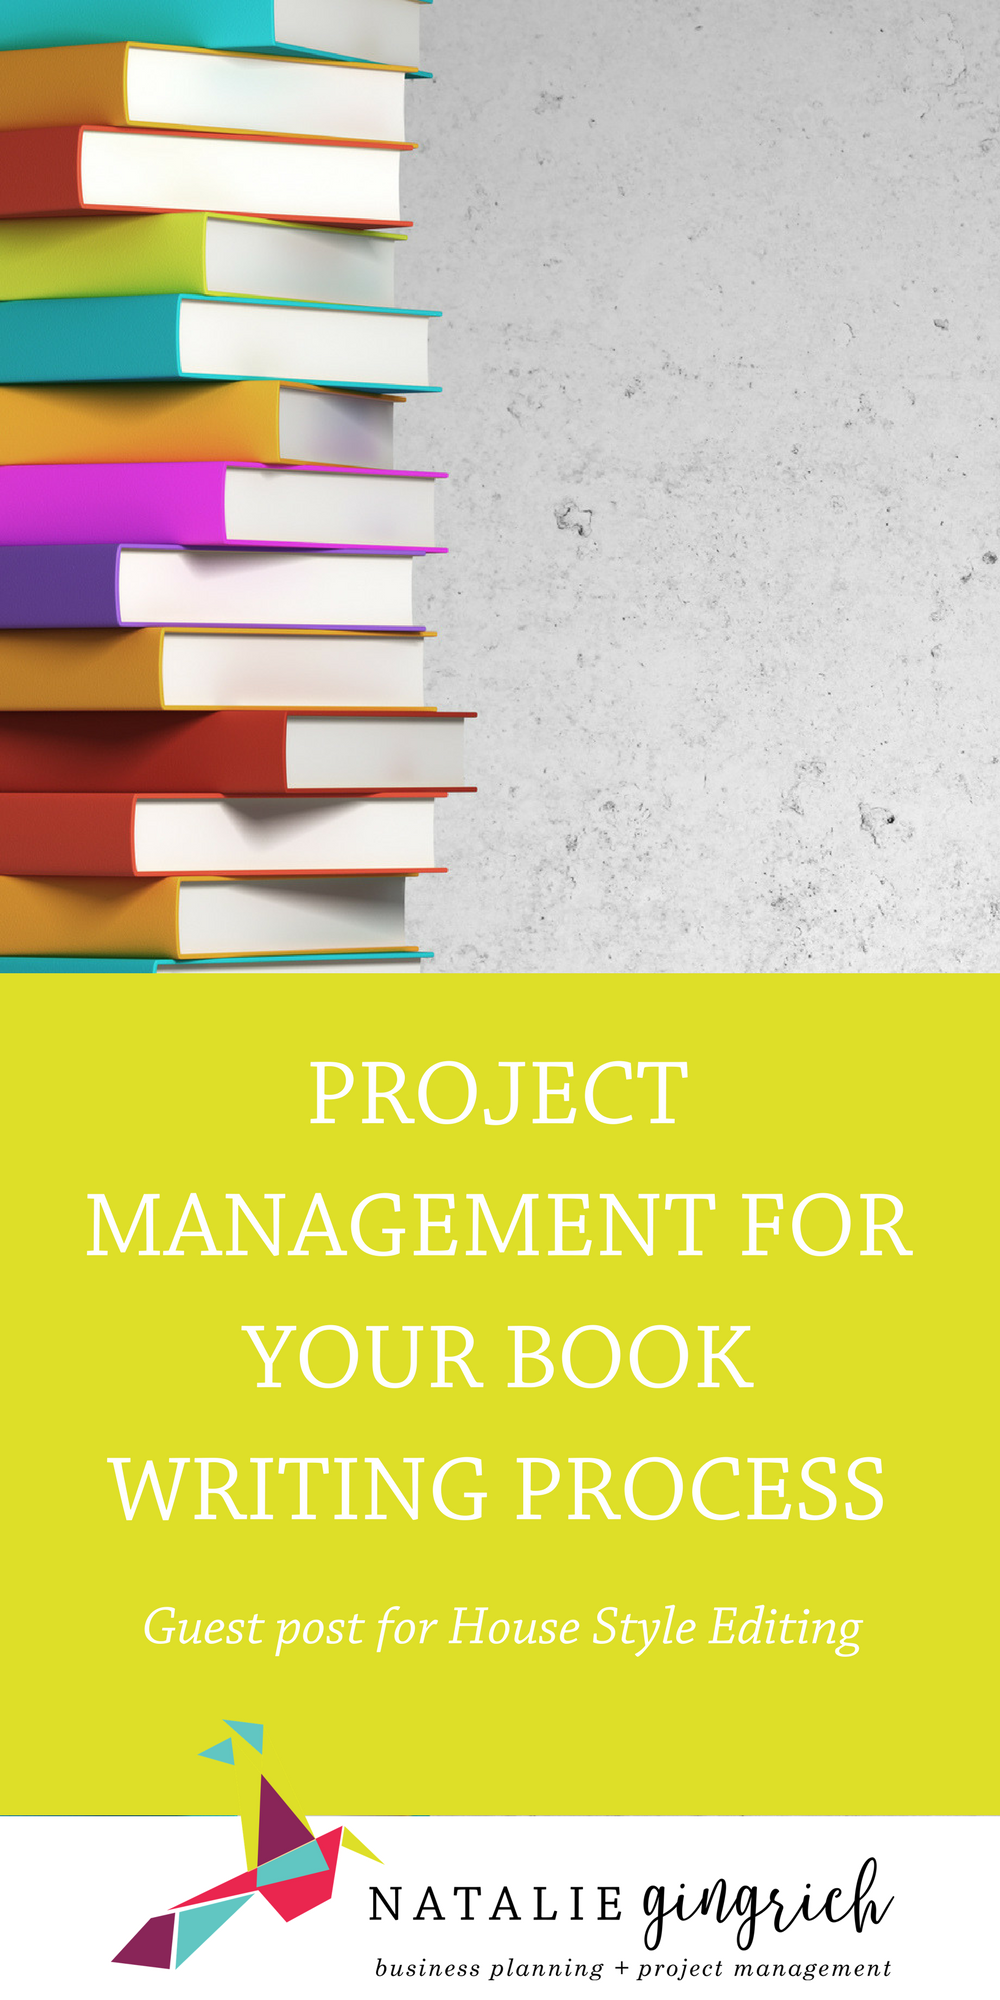 Project Management for Your Book Writing Process